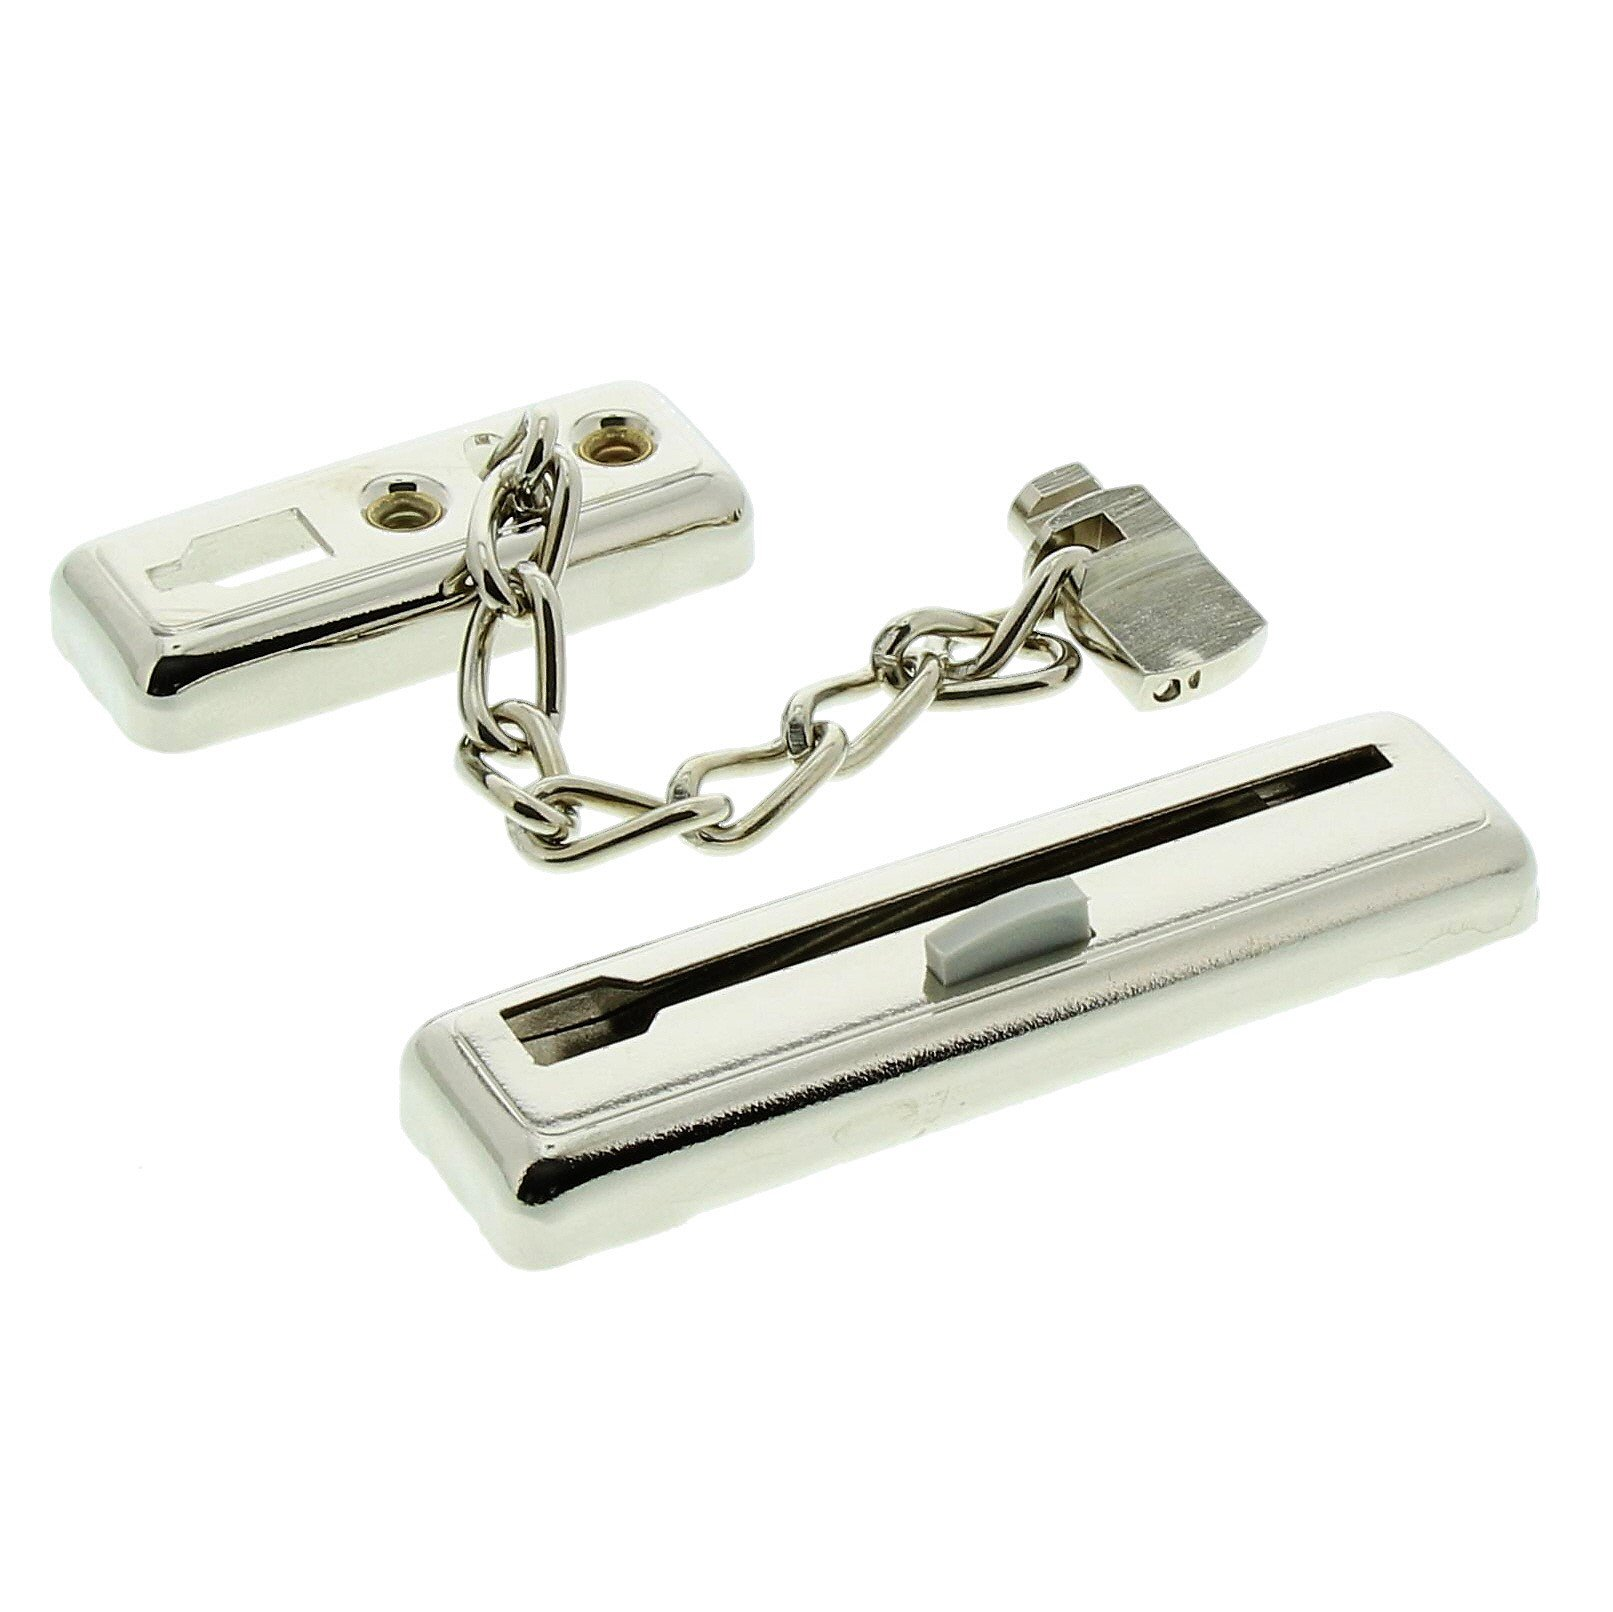 burg Wachter Slide Lock Security Chain